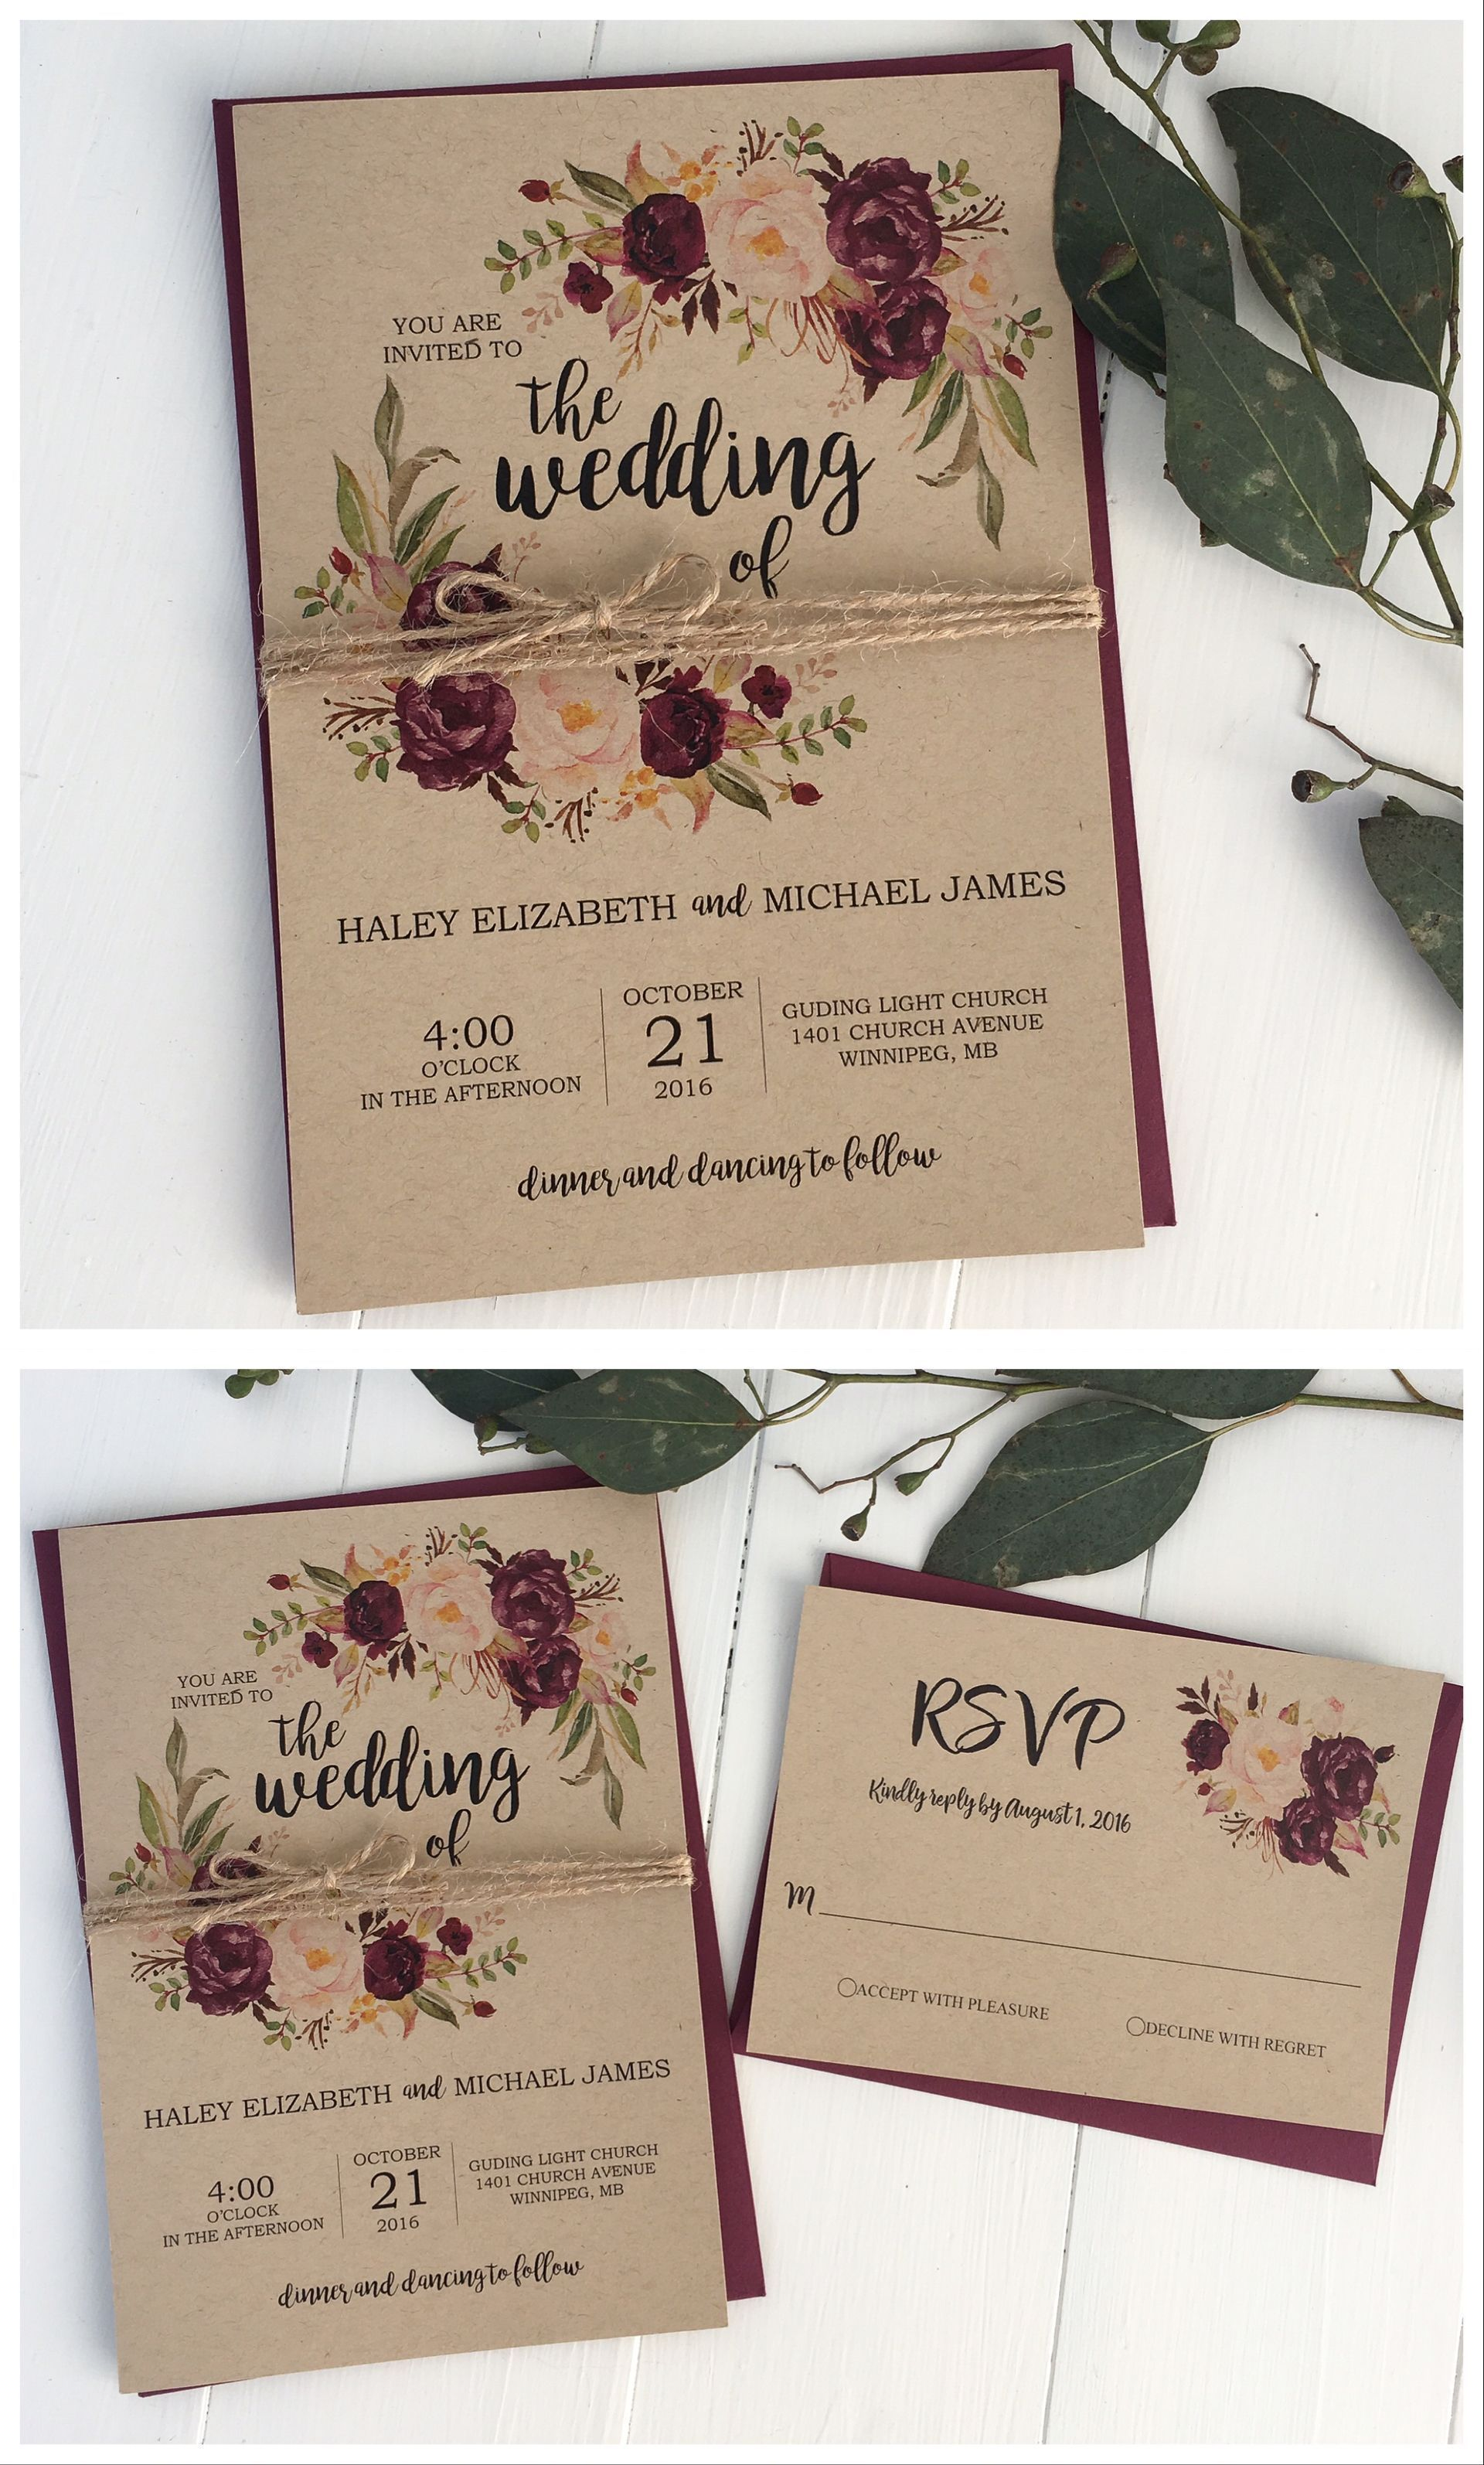 how to address couples on wedding invitations%0A Rustic Country Wedding Invitation   Autumn Leaves on Faux Burlap  PRINTED  Wine Ribbon   Textured background  Autumn colours and Twine